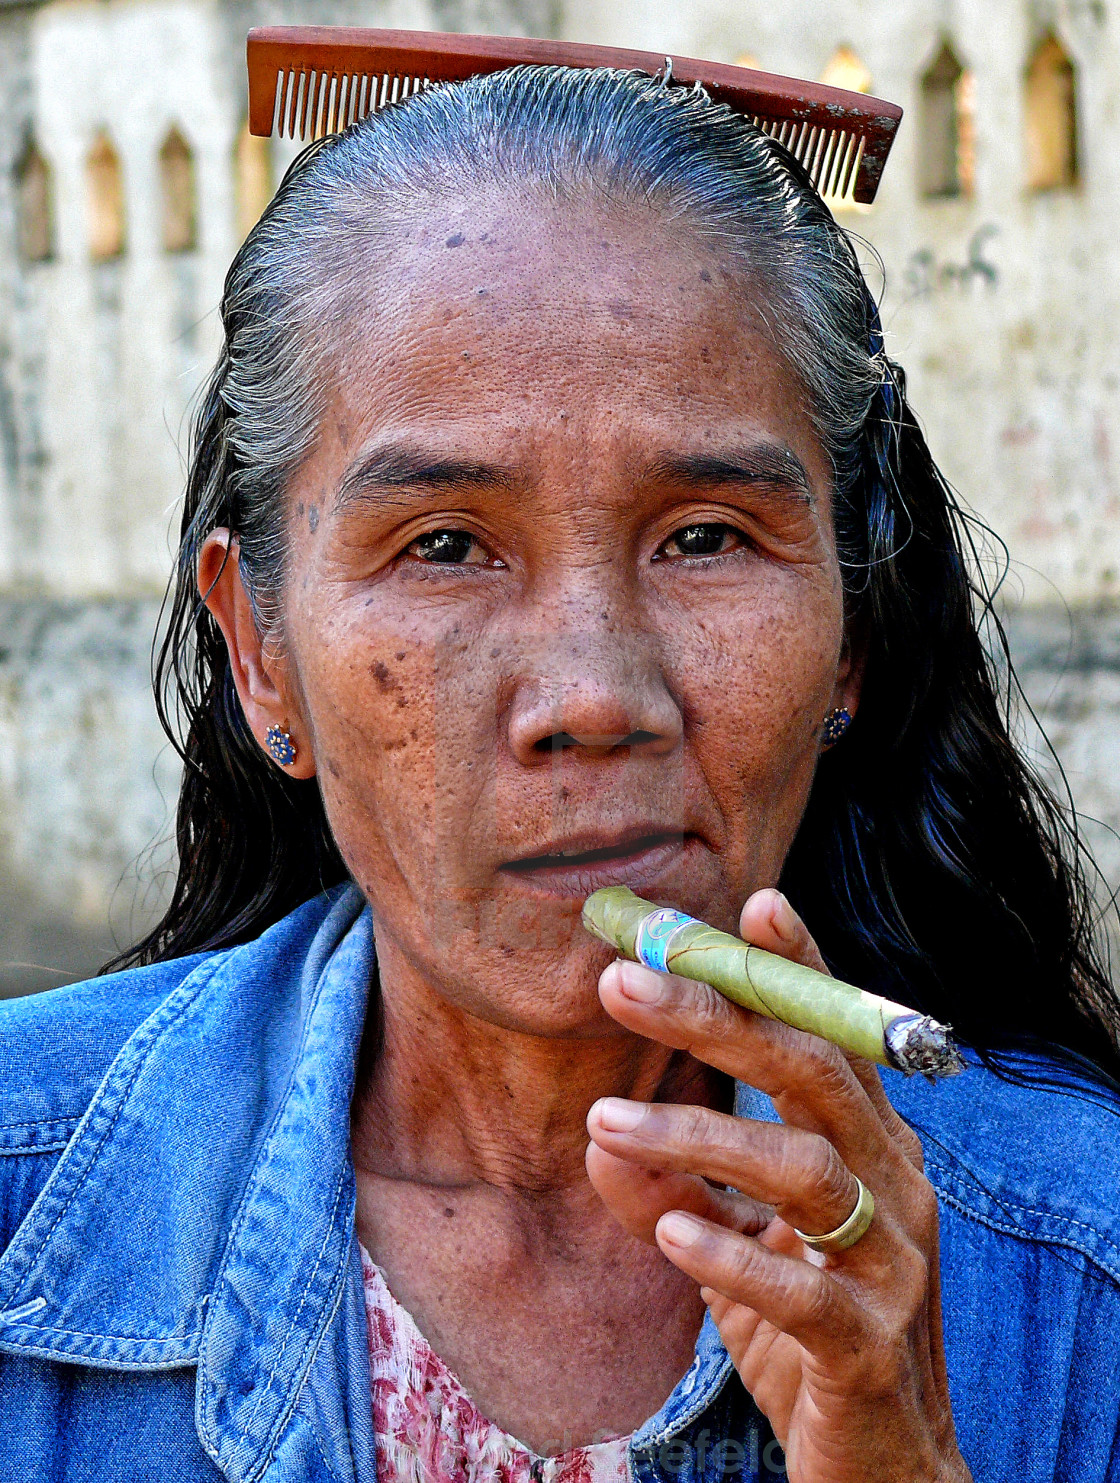 """MANDALAY WOMAN"" stock image"